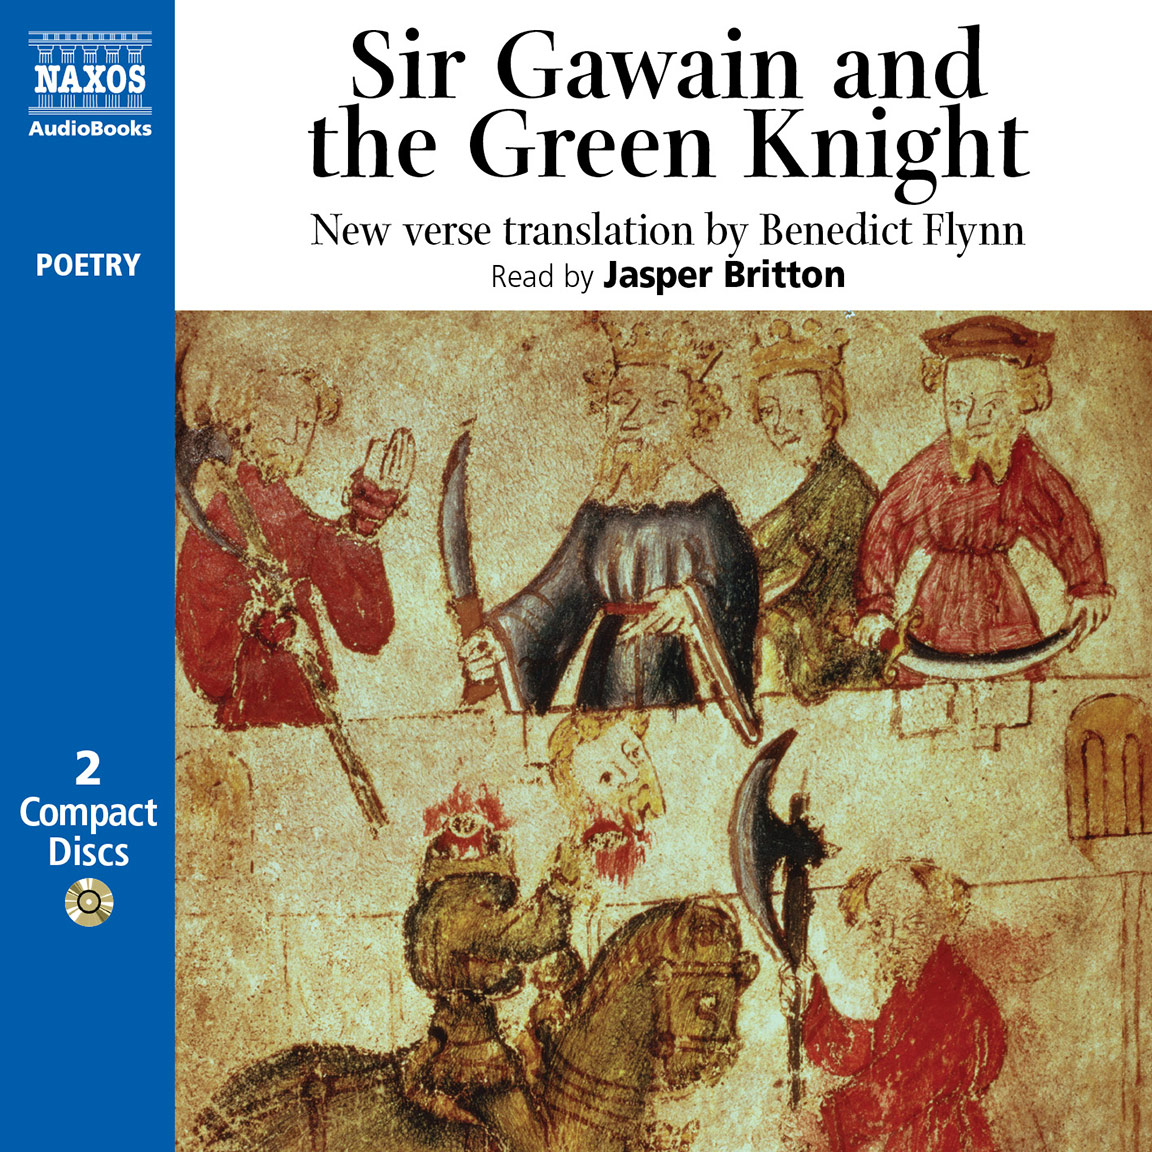 the fault of sir gawain in the verse sir gawain and the green knight by pearl poet